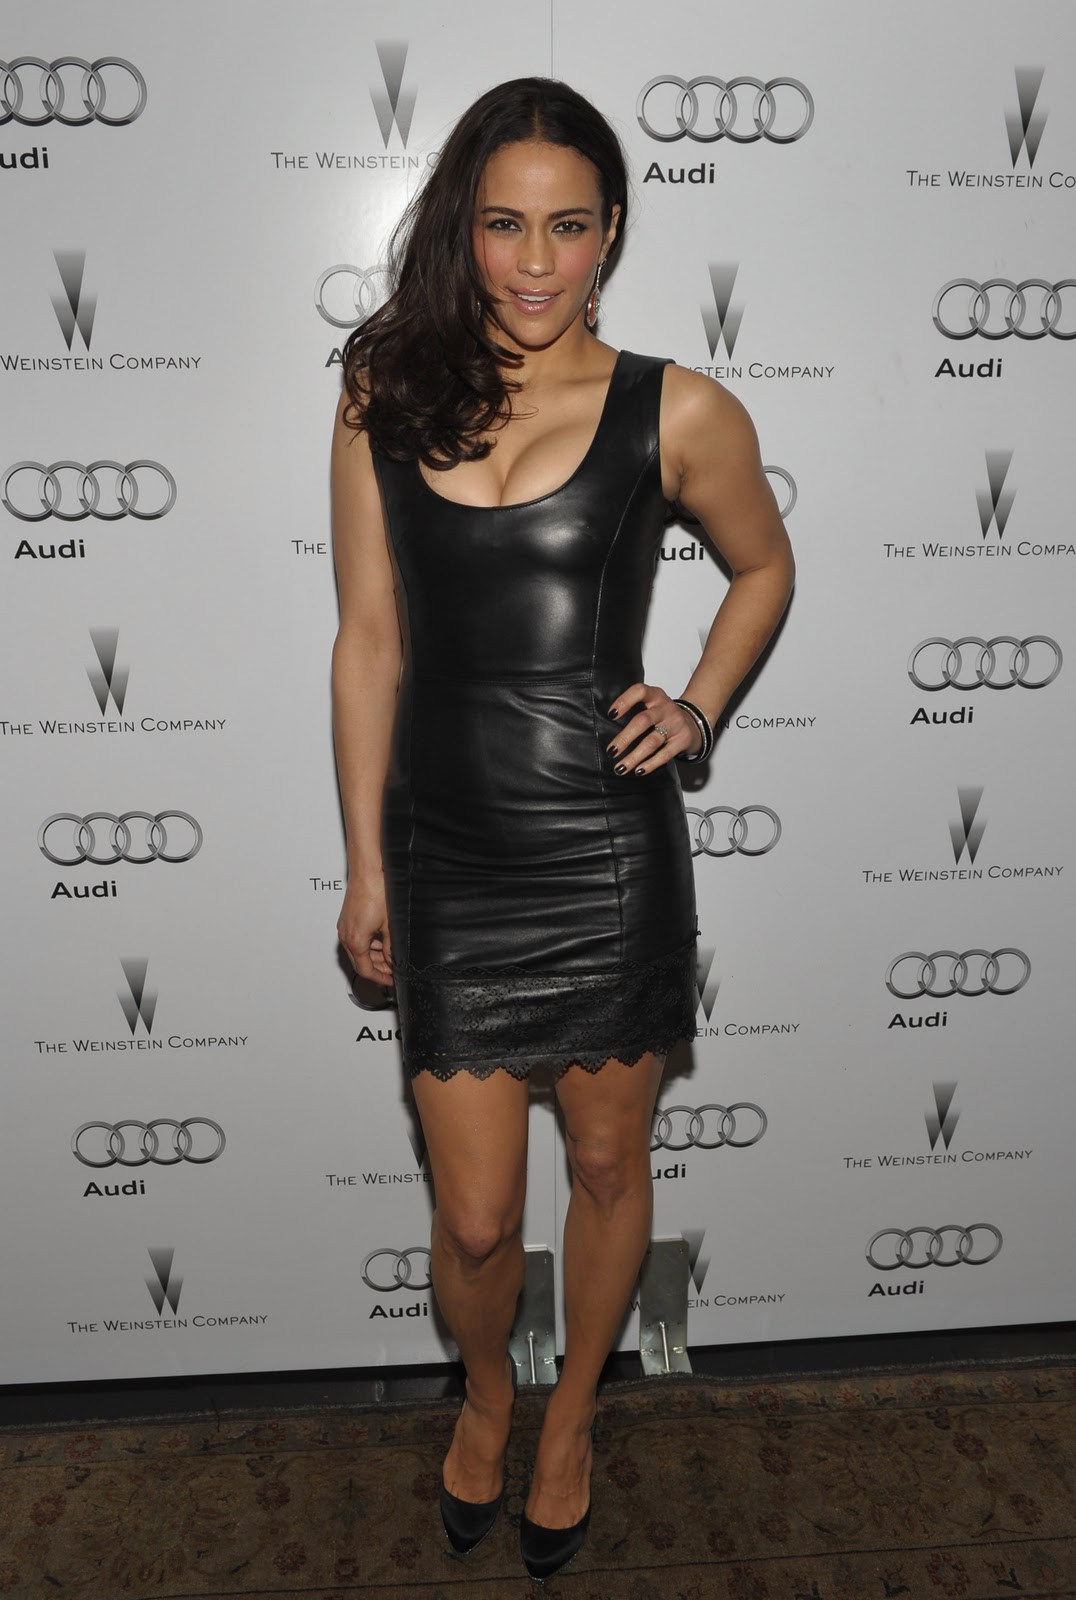 Paula Patton The Weinstein Company & Audi Celebrate Awards Season In